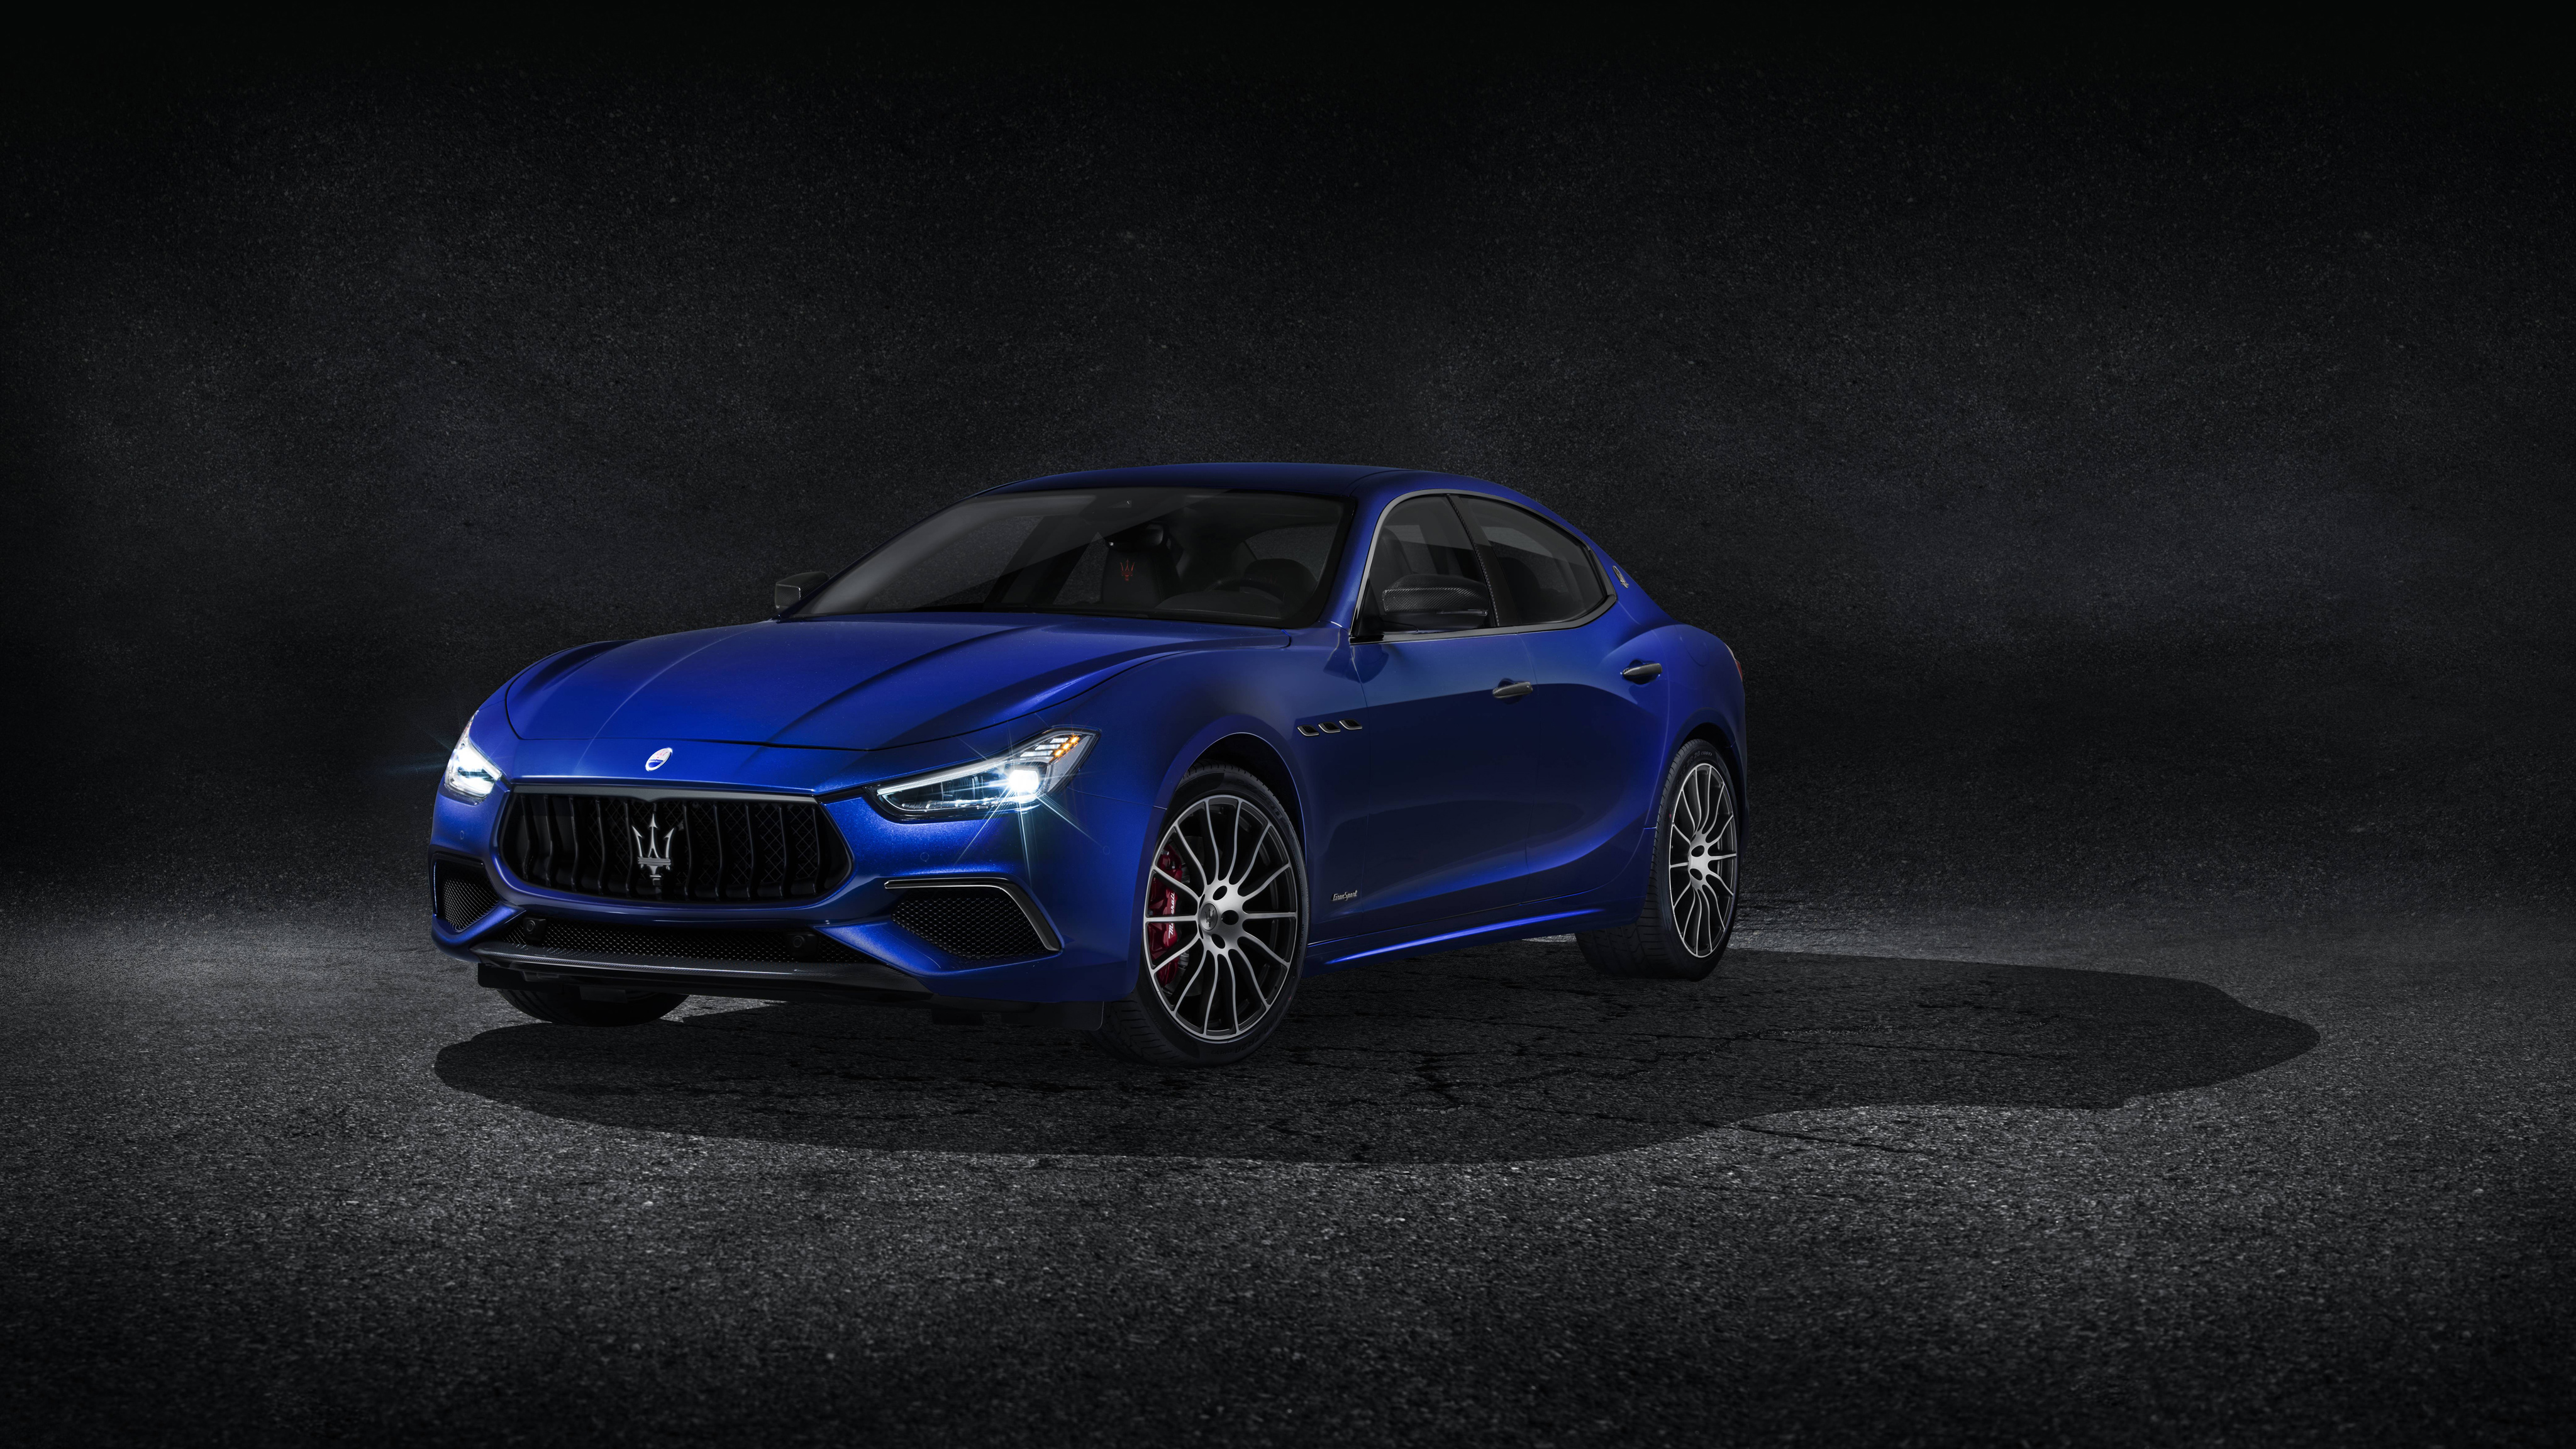 Maserati Ghibli Wallpapers and Background Images   stmednet 4096x2304